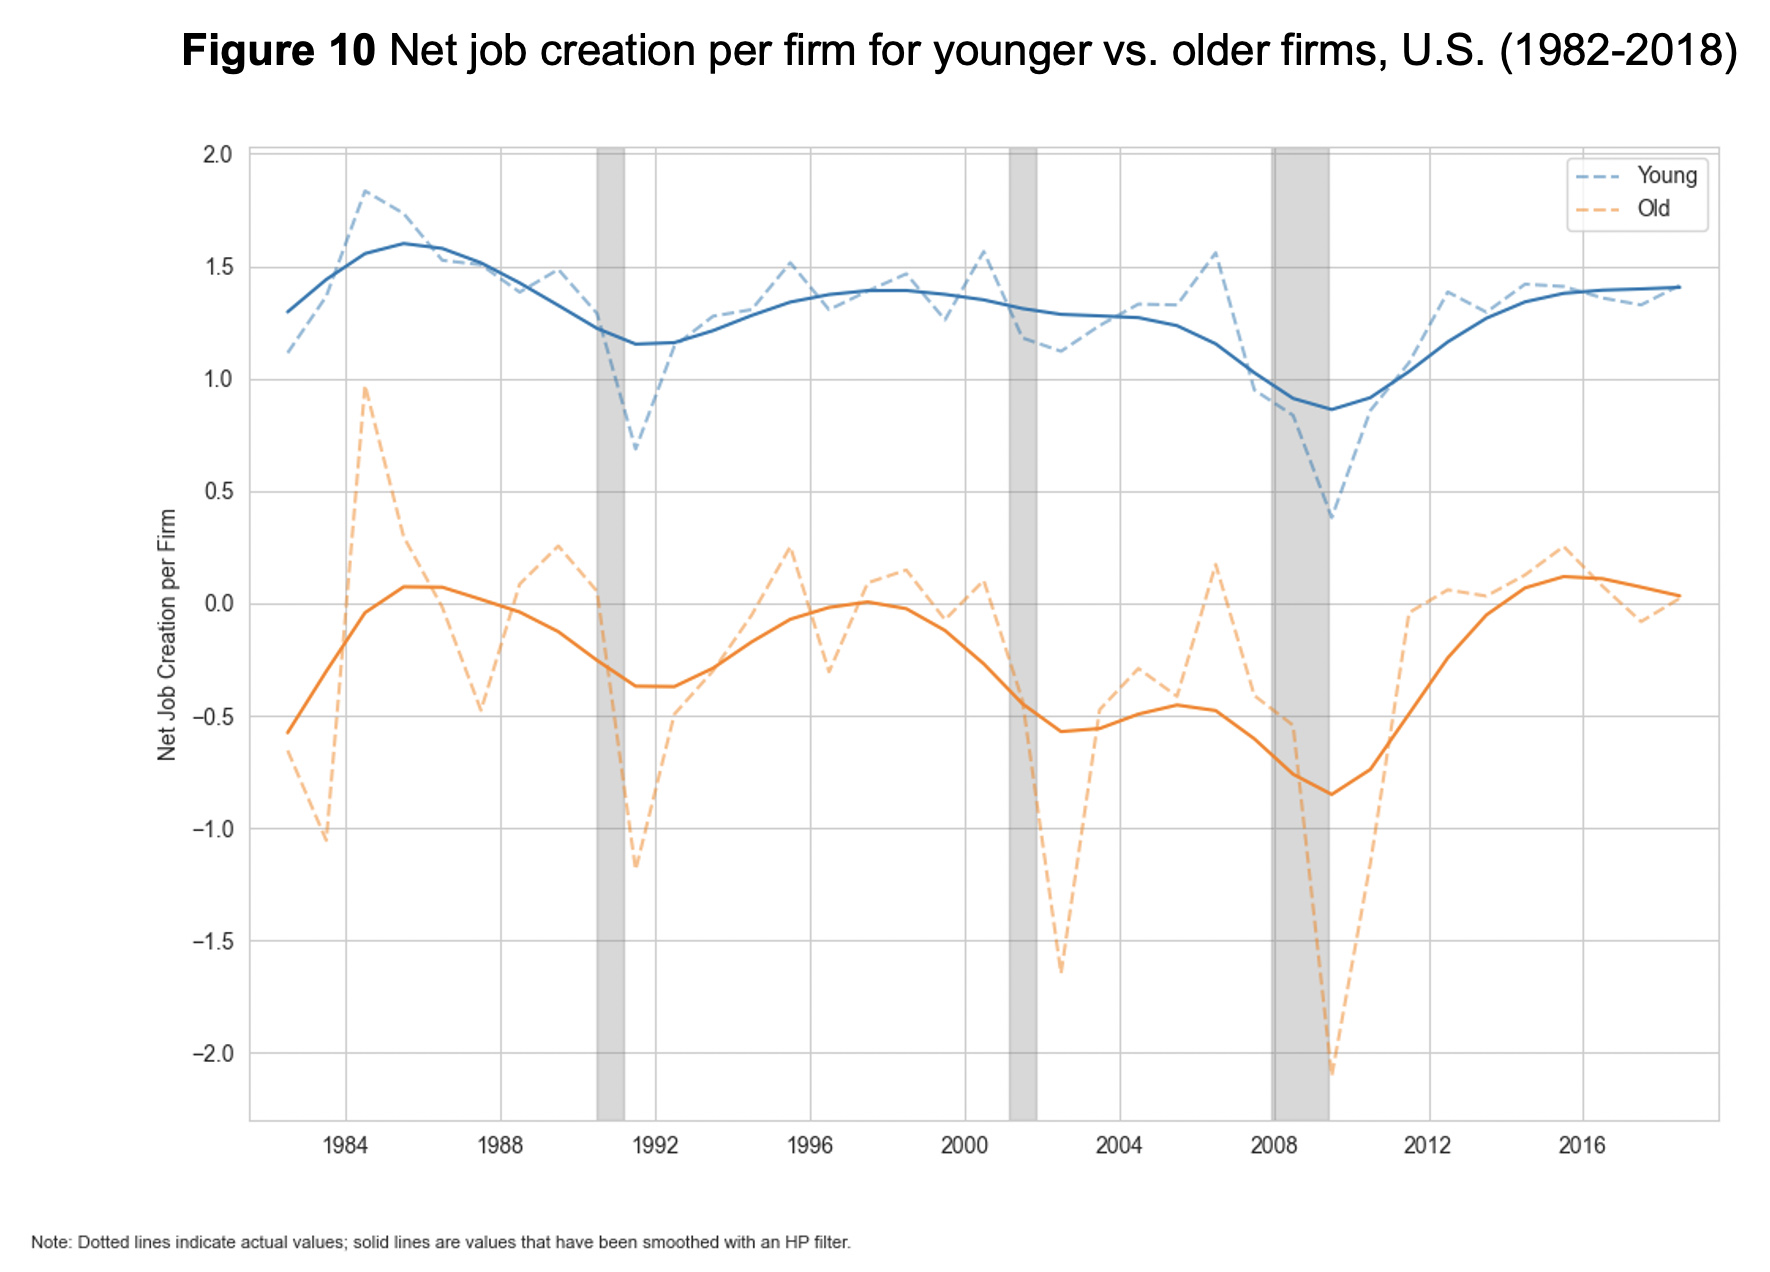 Figure 10: Net job creation per firm for younger vs. older firms, U.S. (1982-2018)